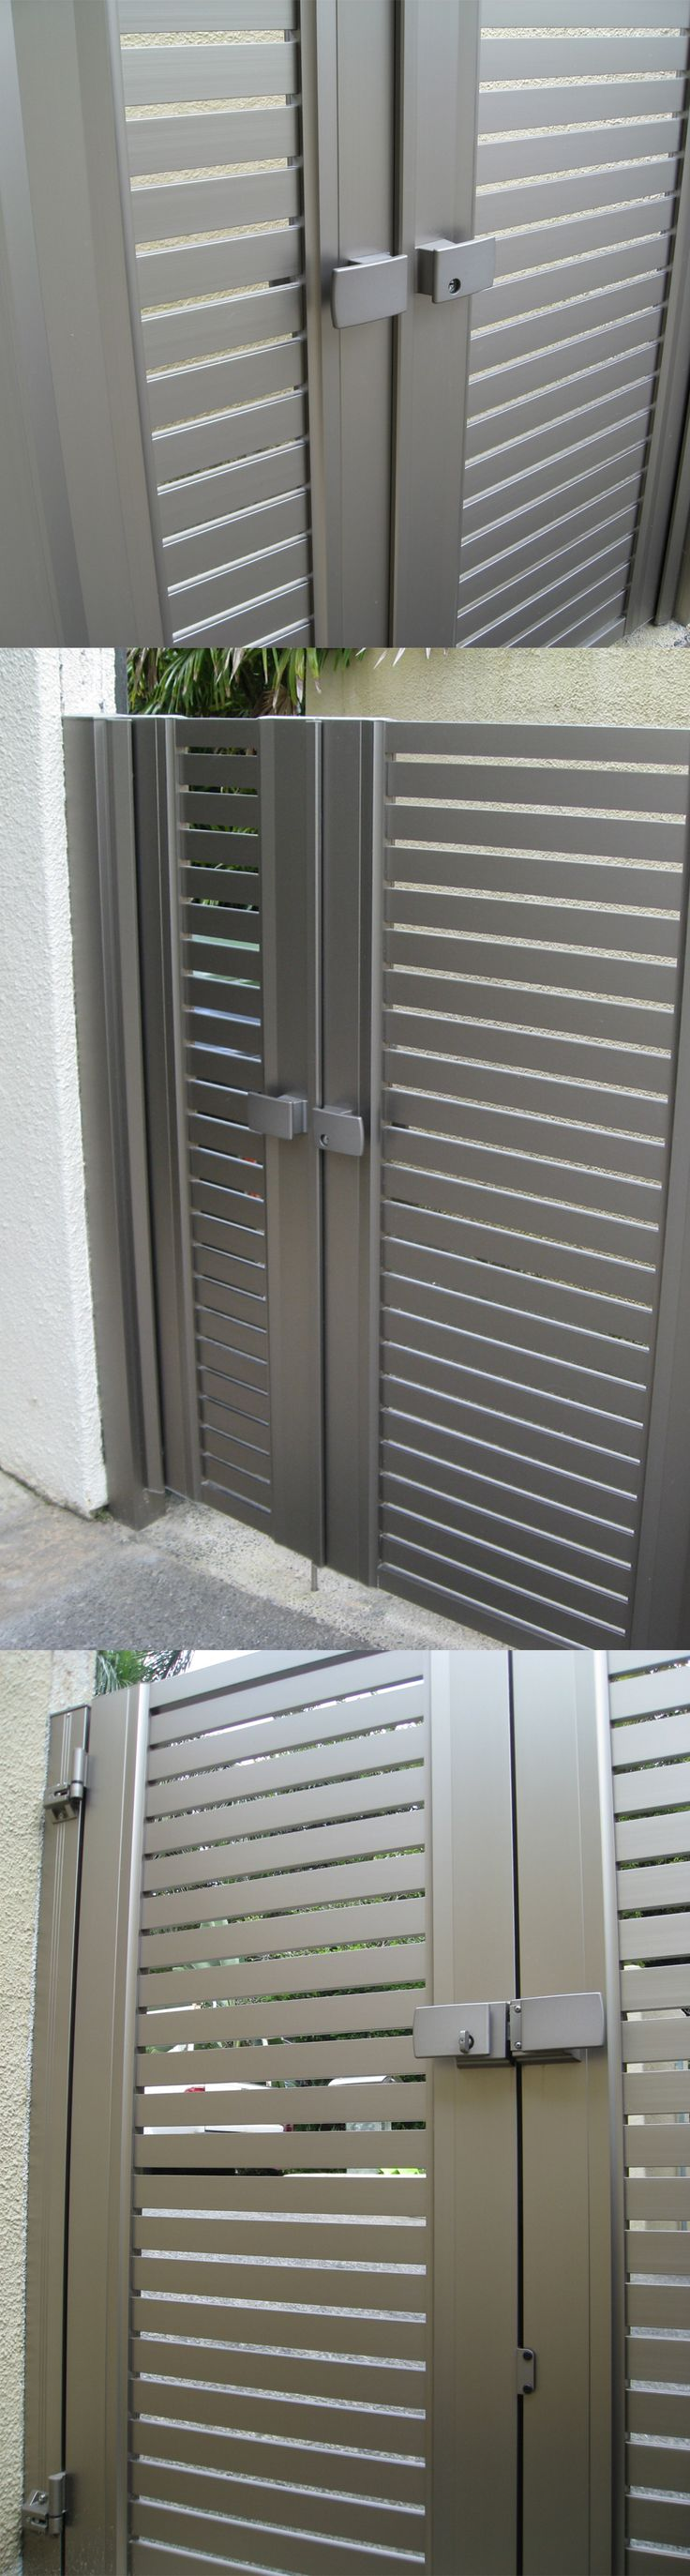 Japanese aluminum gate MEX style#7 with horizontal slats gives privacy with airflow. See more MEX gates here https://kunkelworks.com/wp-content/uploads/2015/11/kunkelworks-mex-gates.pdf